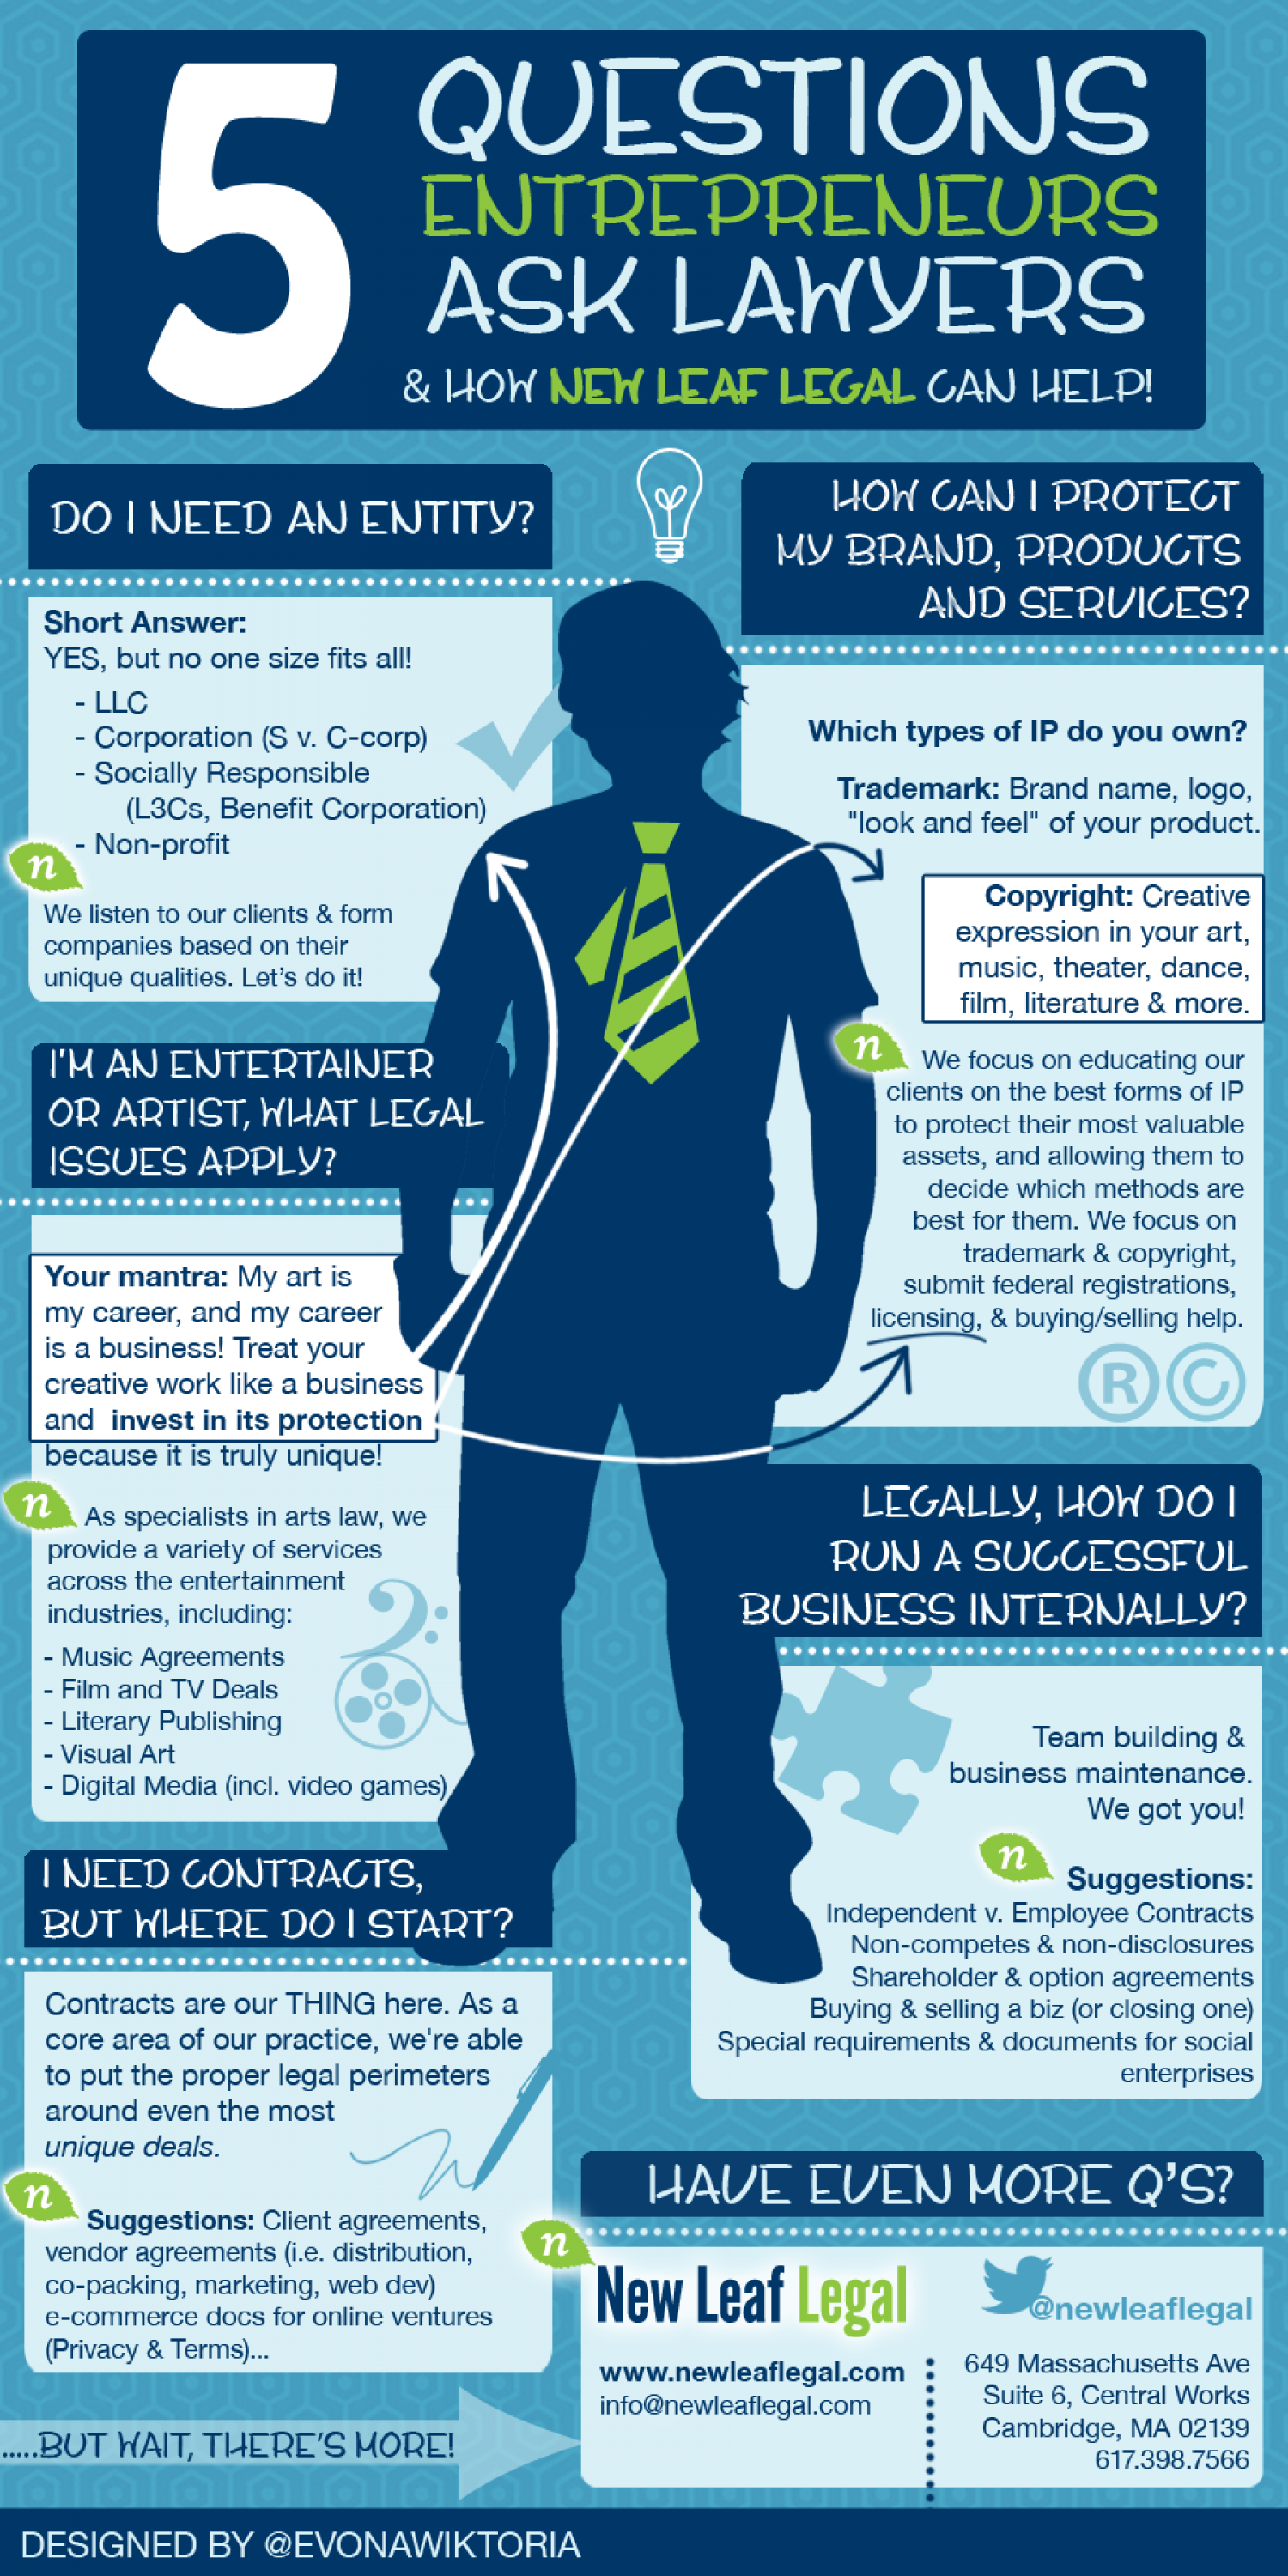 5 Questions Entrepreneurs Ask Lawyers Infographic